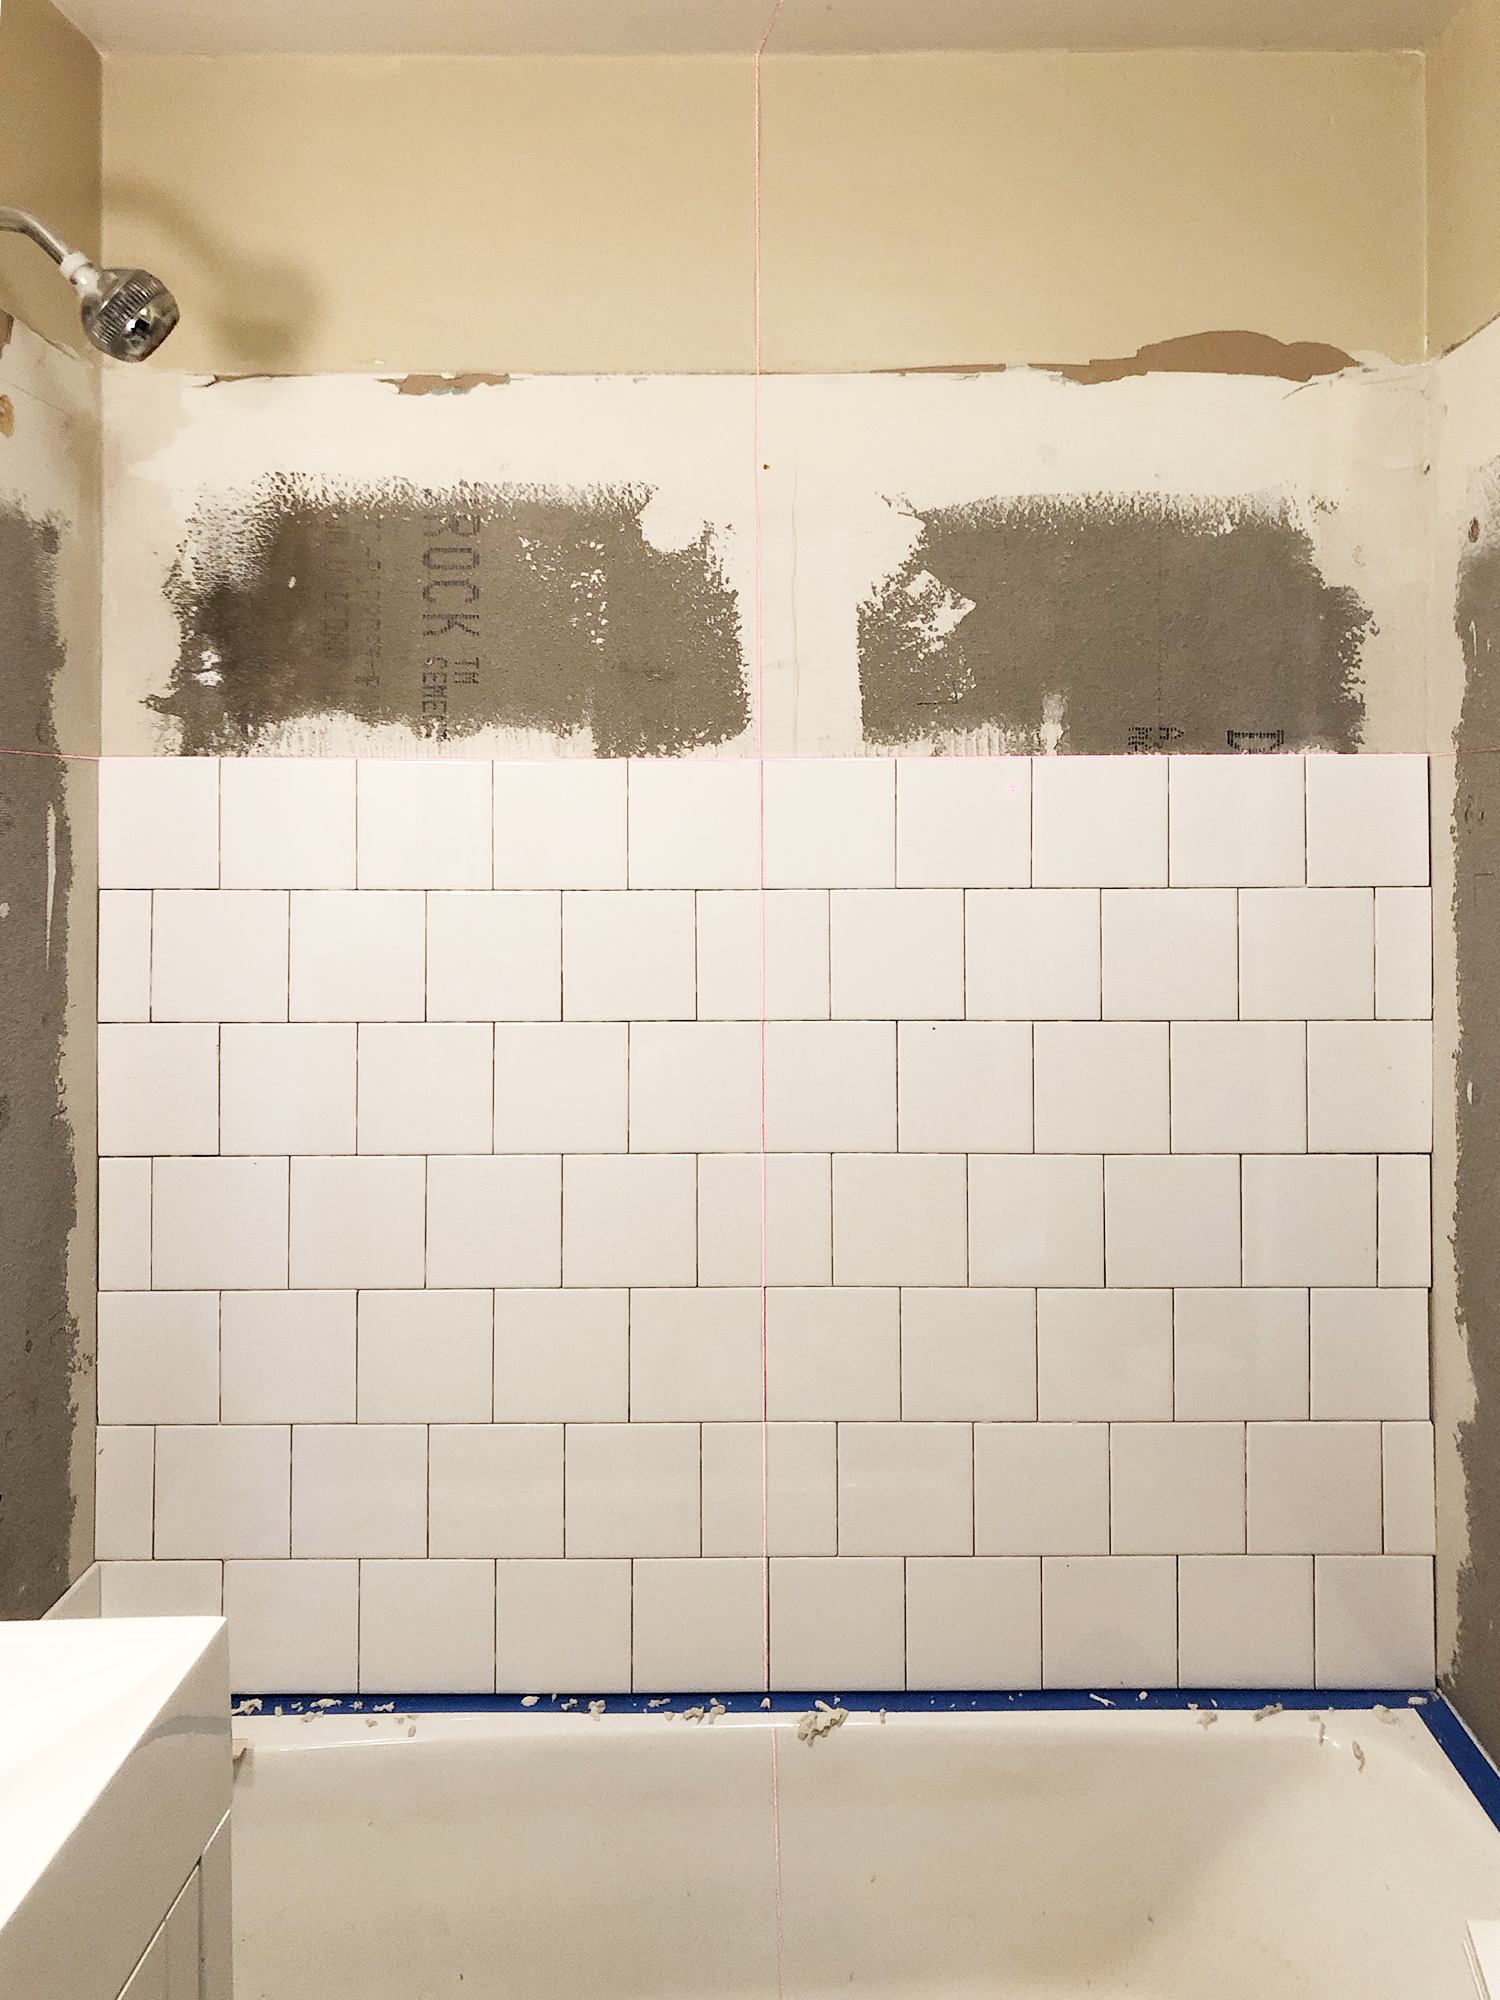 Bathroom Tile Progress at the Cabin